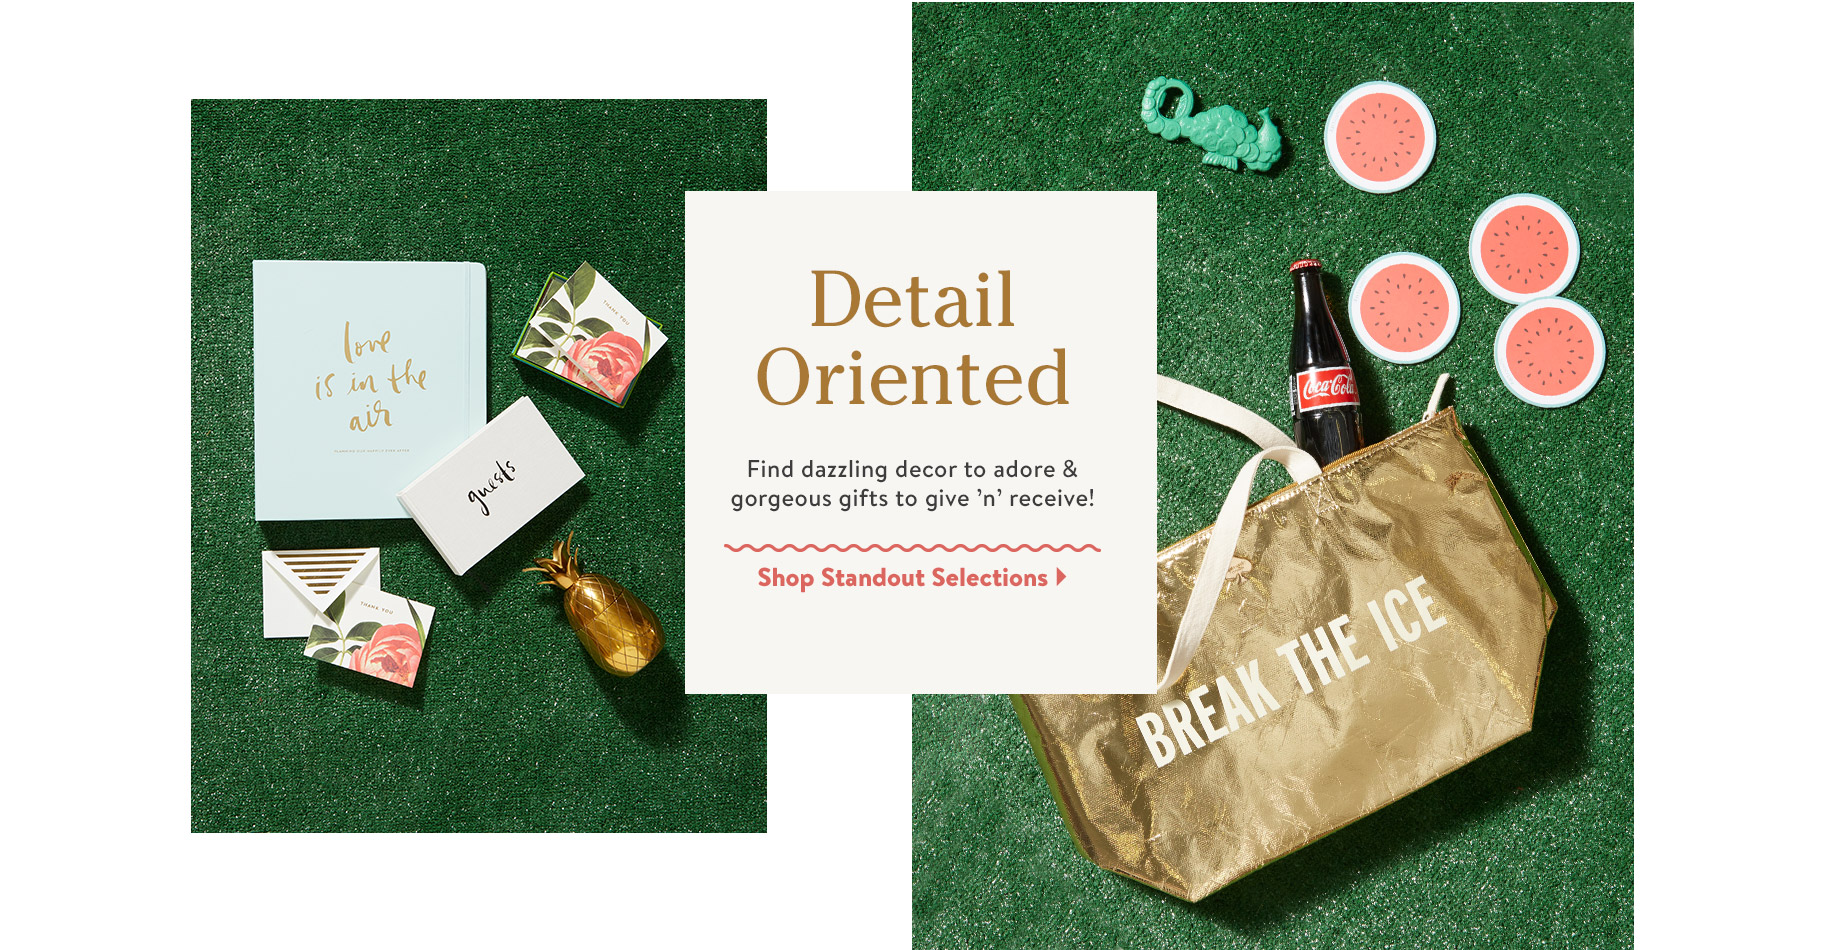 Detail Oriented. Find dazzling decor to adore & gorgeous gifts to give 'n' receive! Shop Standout Selections.